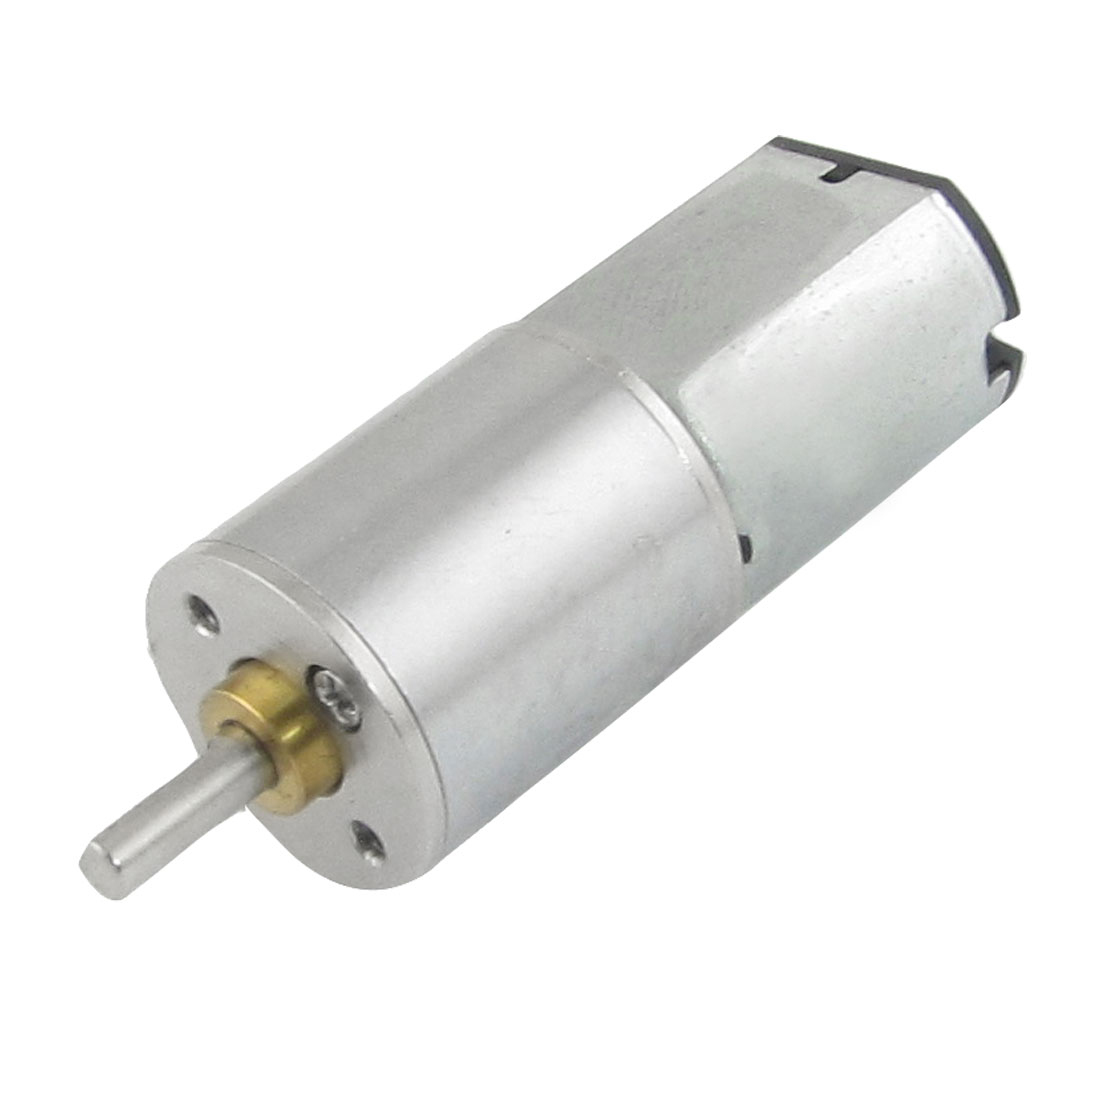 10RPM 6V 0.5A High Torque Electric DC Geared Motor Replacement